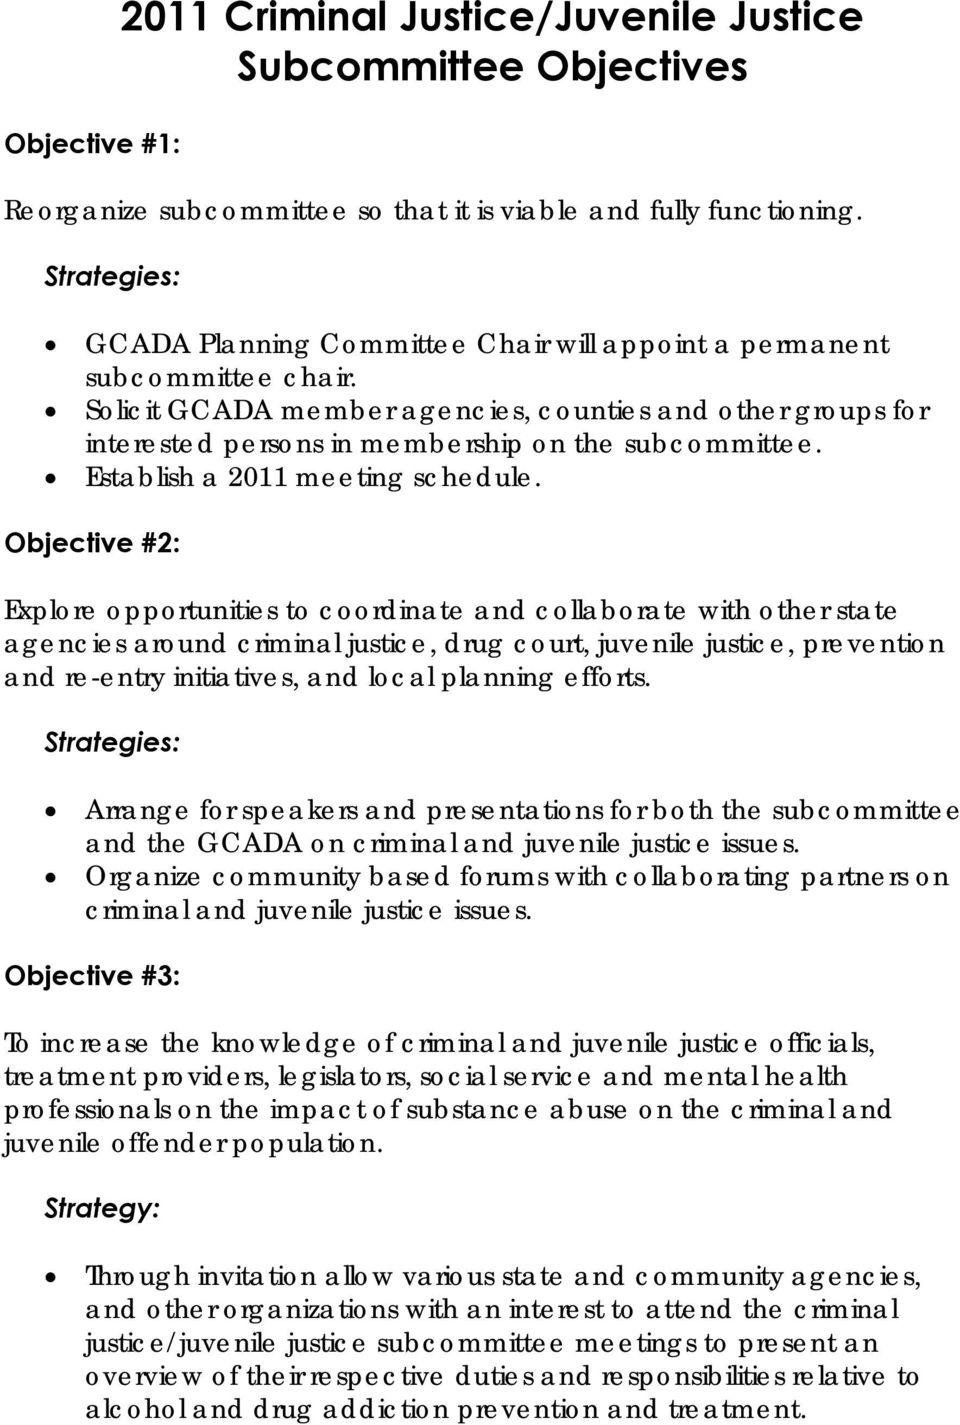 Solicit GCADA member agencies, counties and other groups for interested persons in membership on the subcommittee. Establish a 2011 meeting schedule.